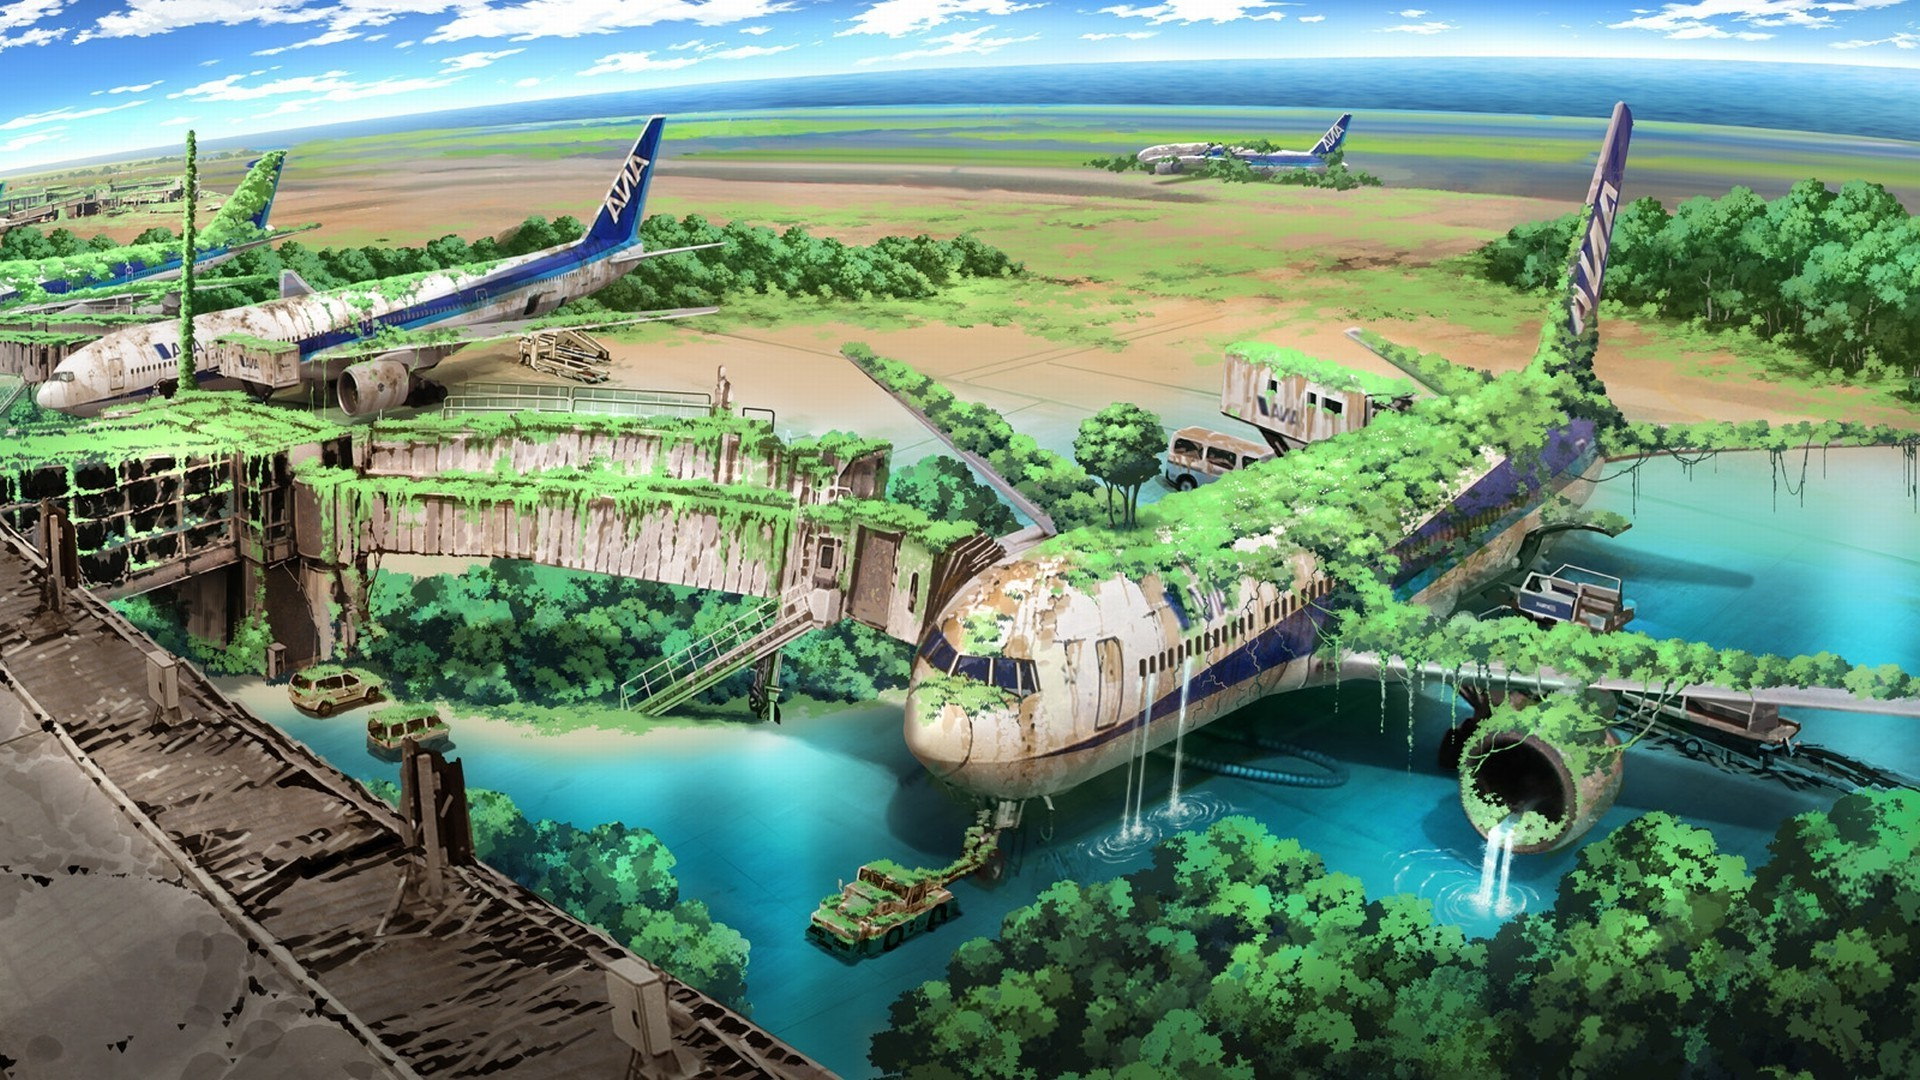 Res: 1920x1080, apocalyptic, Airplane, Nature, Anime, Aircraft, Drawing Wallpapers HD /  Desktop and Mobile Backgrounds